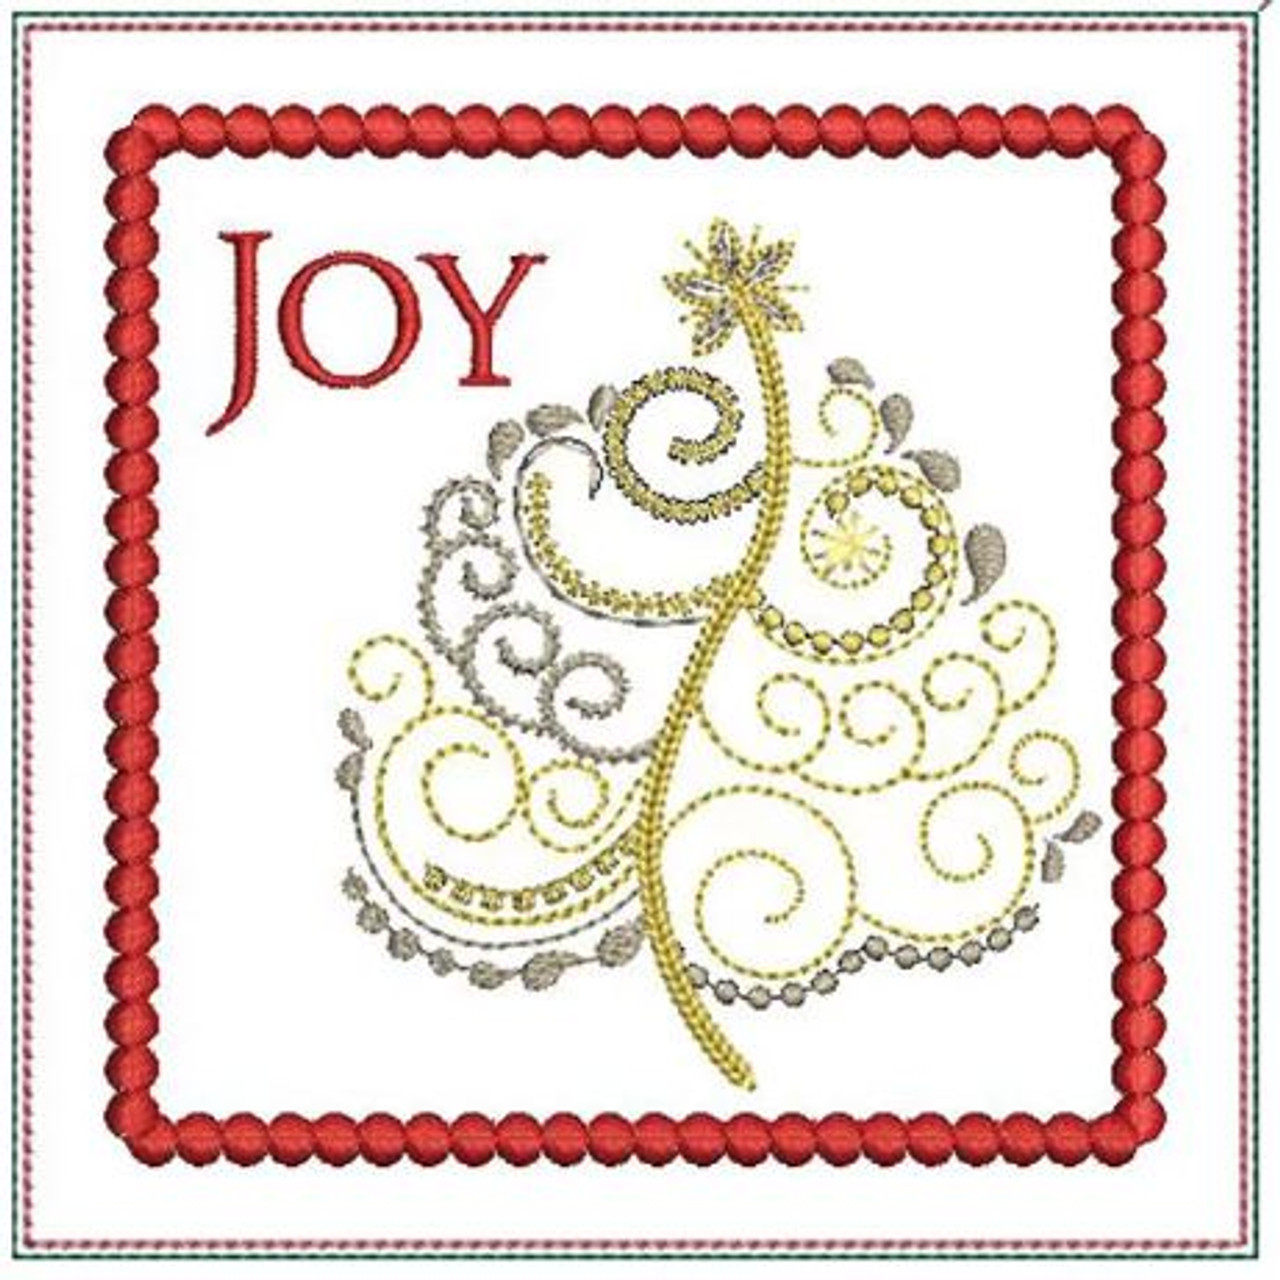 Joy Christmas Tree Mug Rug Machine Embroidery Design 5x7 In The Hoop Instant Download In The Hoop Coaster Holiday Gift Giving Tattered Stitch Embroideries